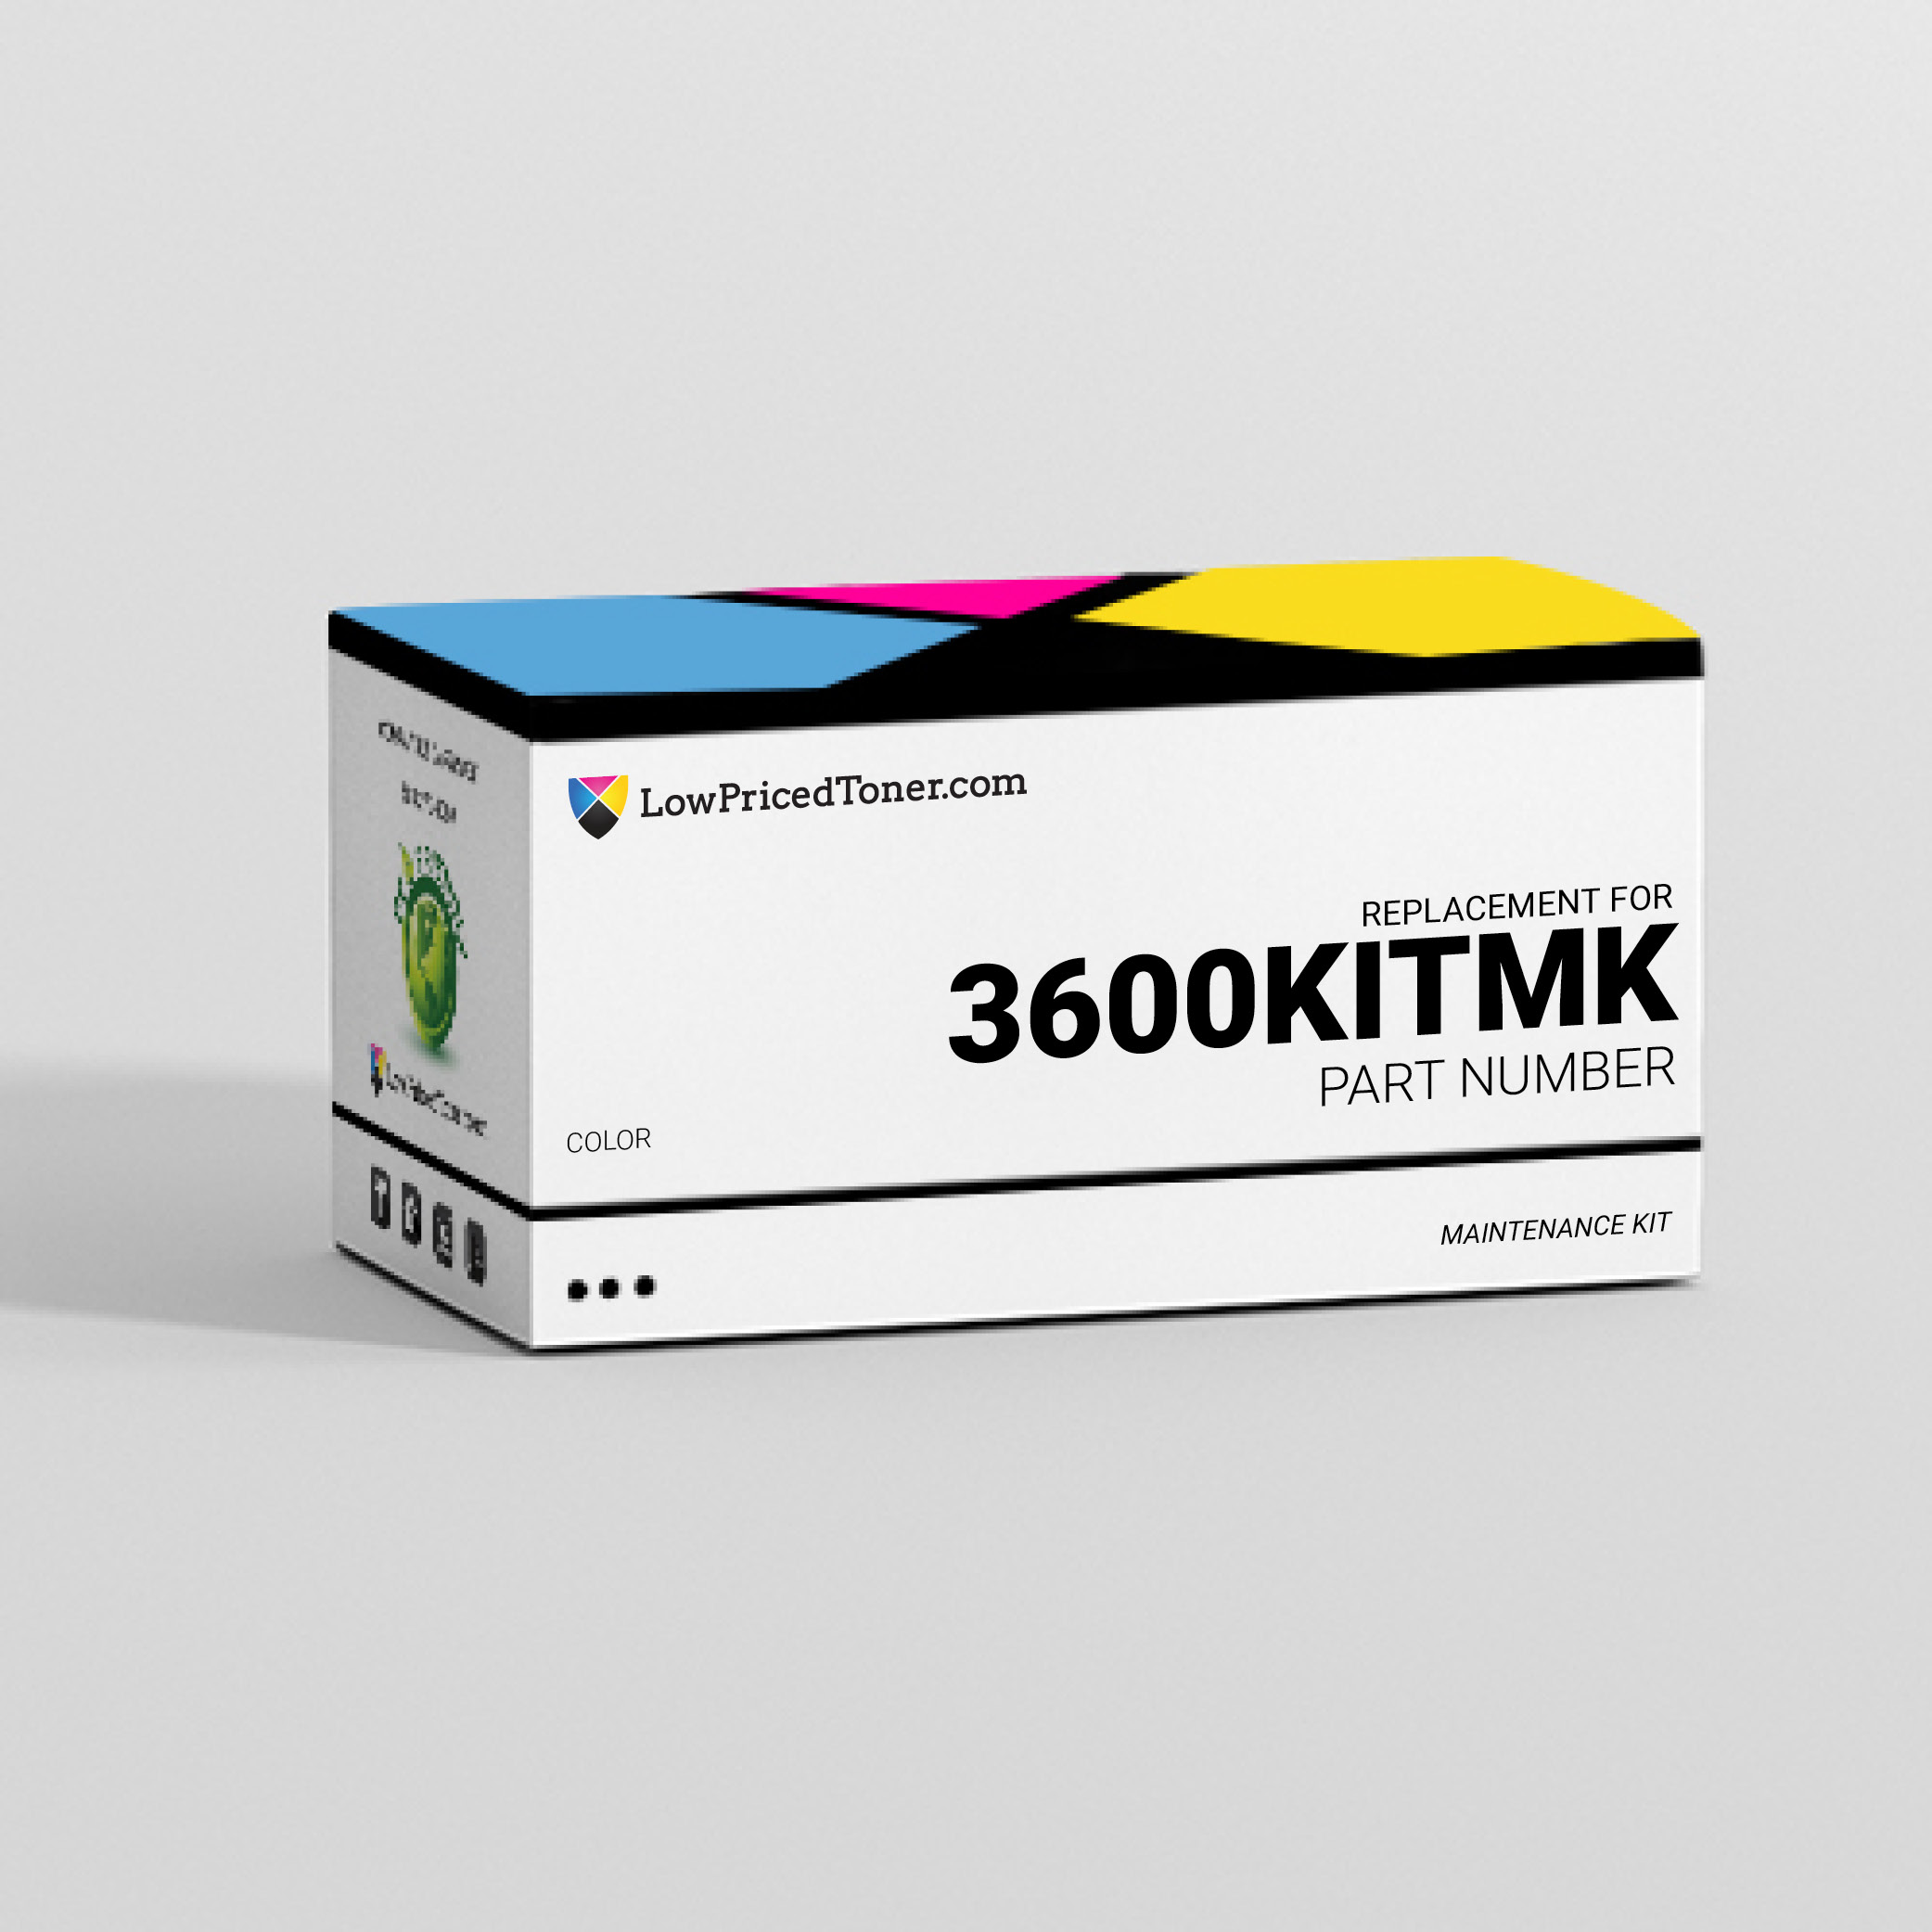 HP 3600KITMK Remanufactured Color Maintenance Kit